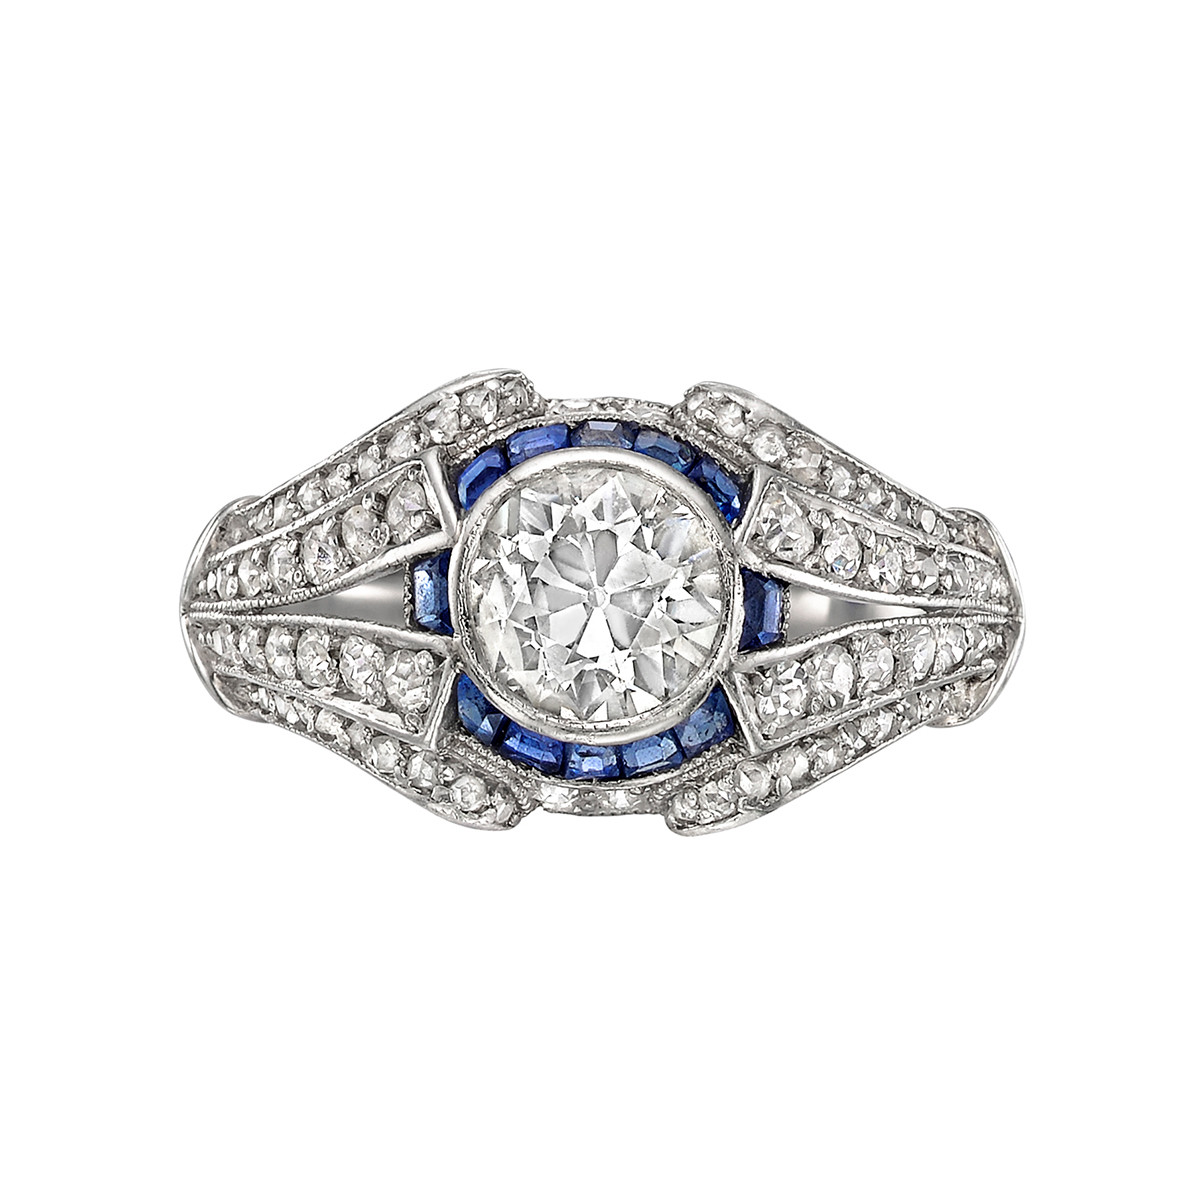 1.00 Carat Old Mine Diamond & Sapphire Ring